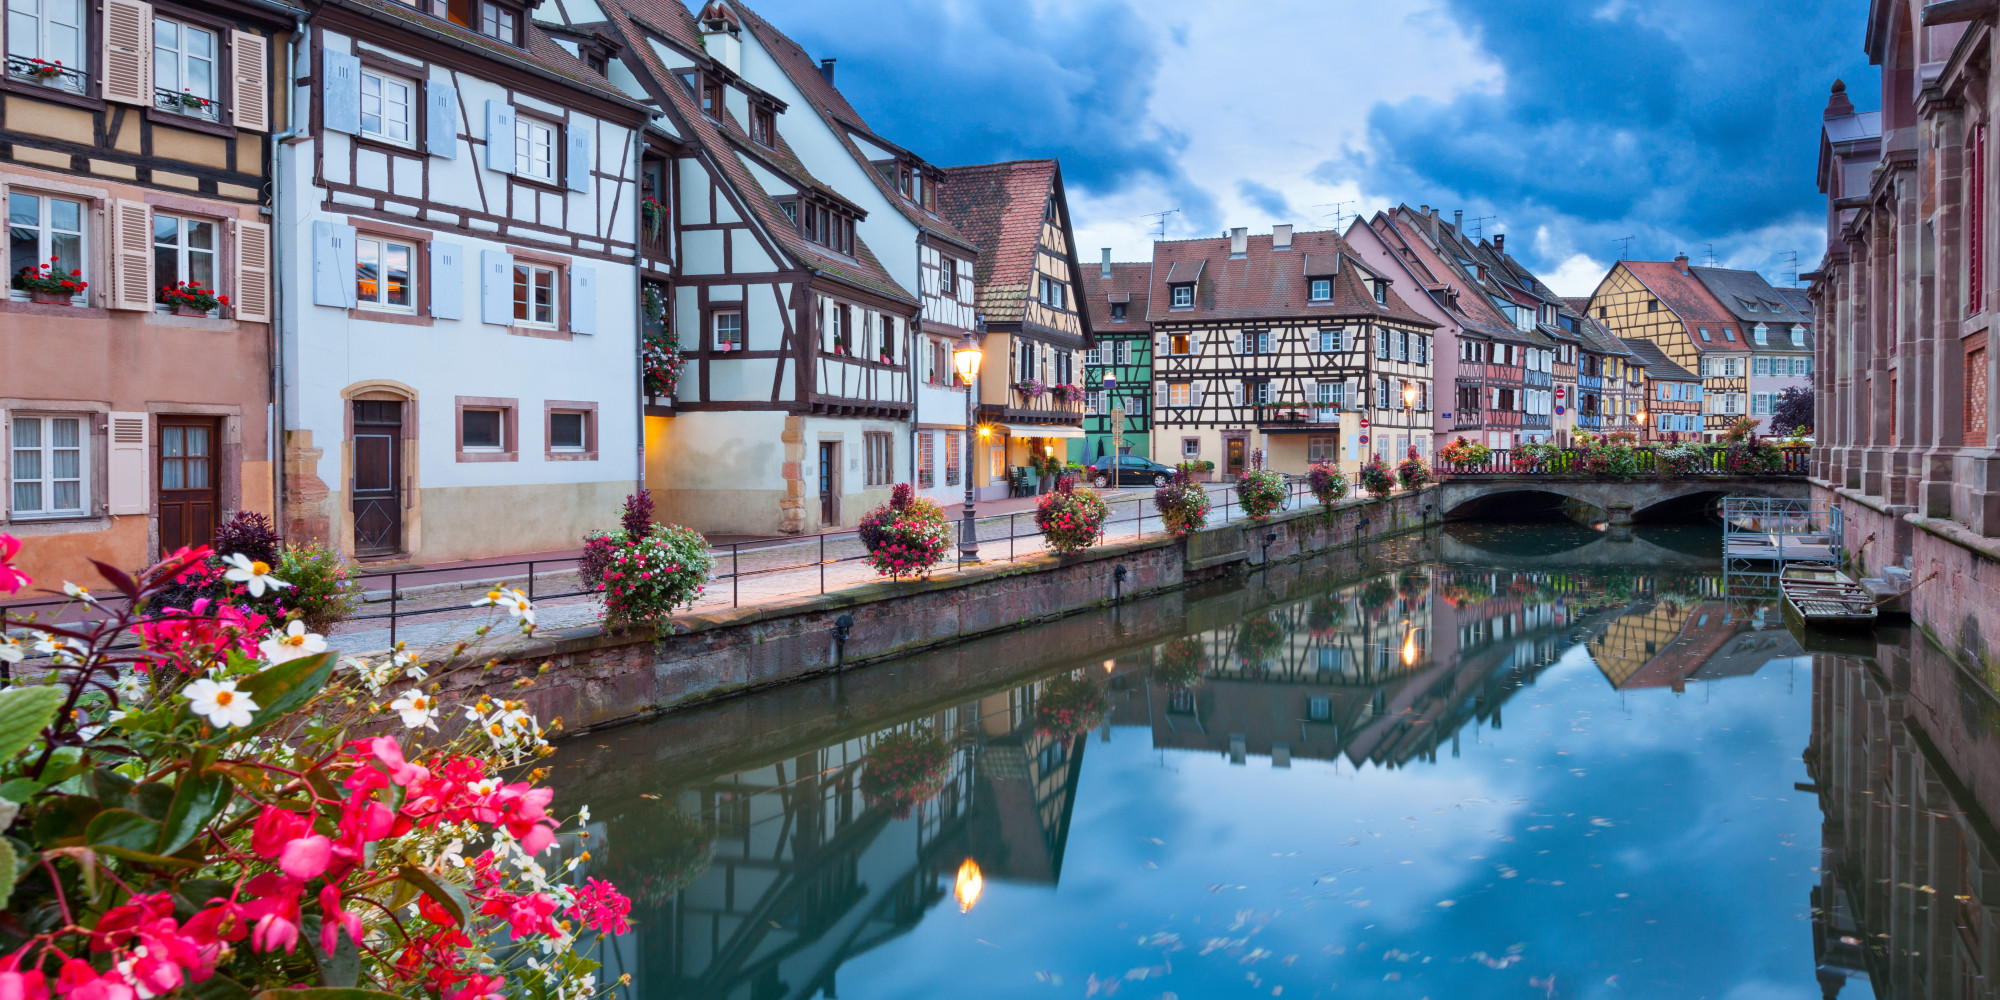 News from the us, europe, asia pacific, africa, middle east, america Colmar, France Is A Storybook Town For Your Travel Tuesday ...